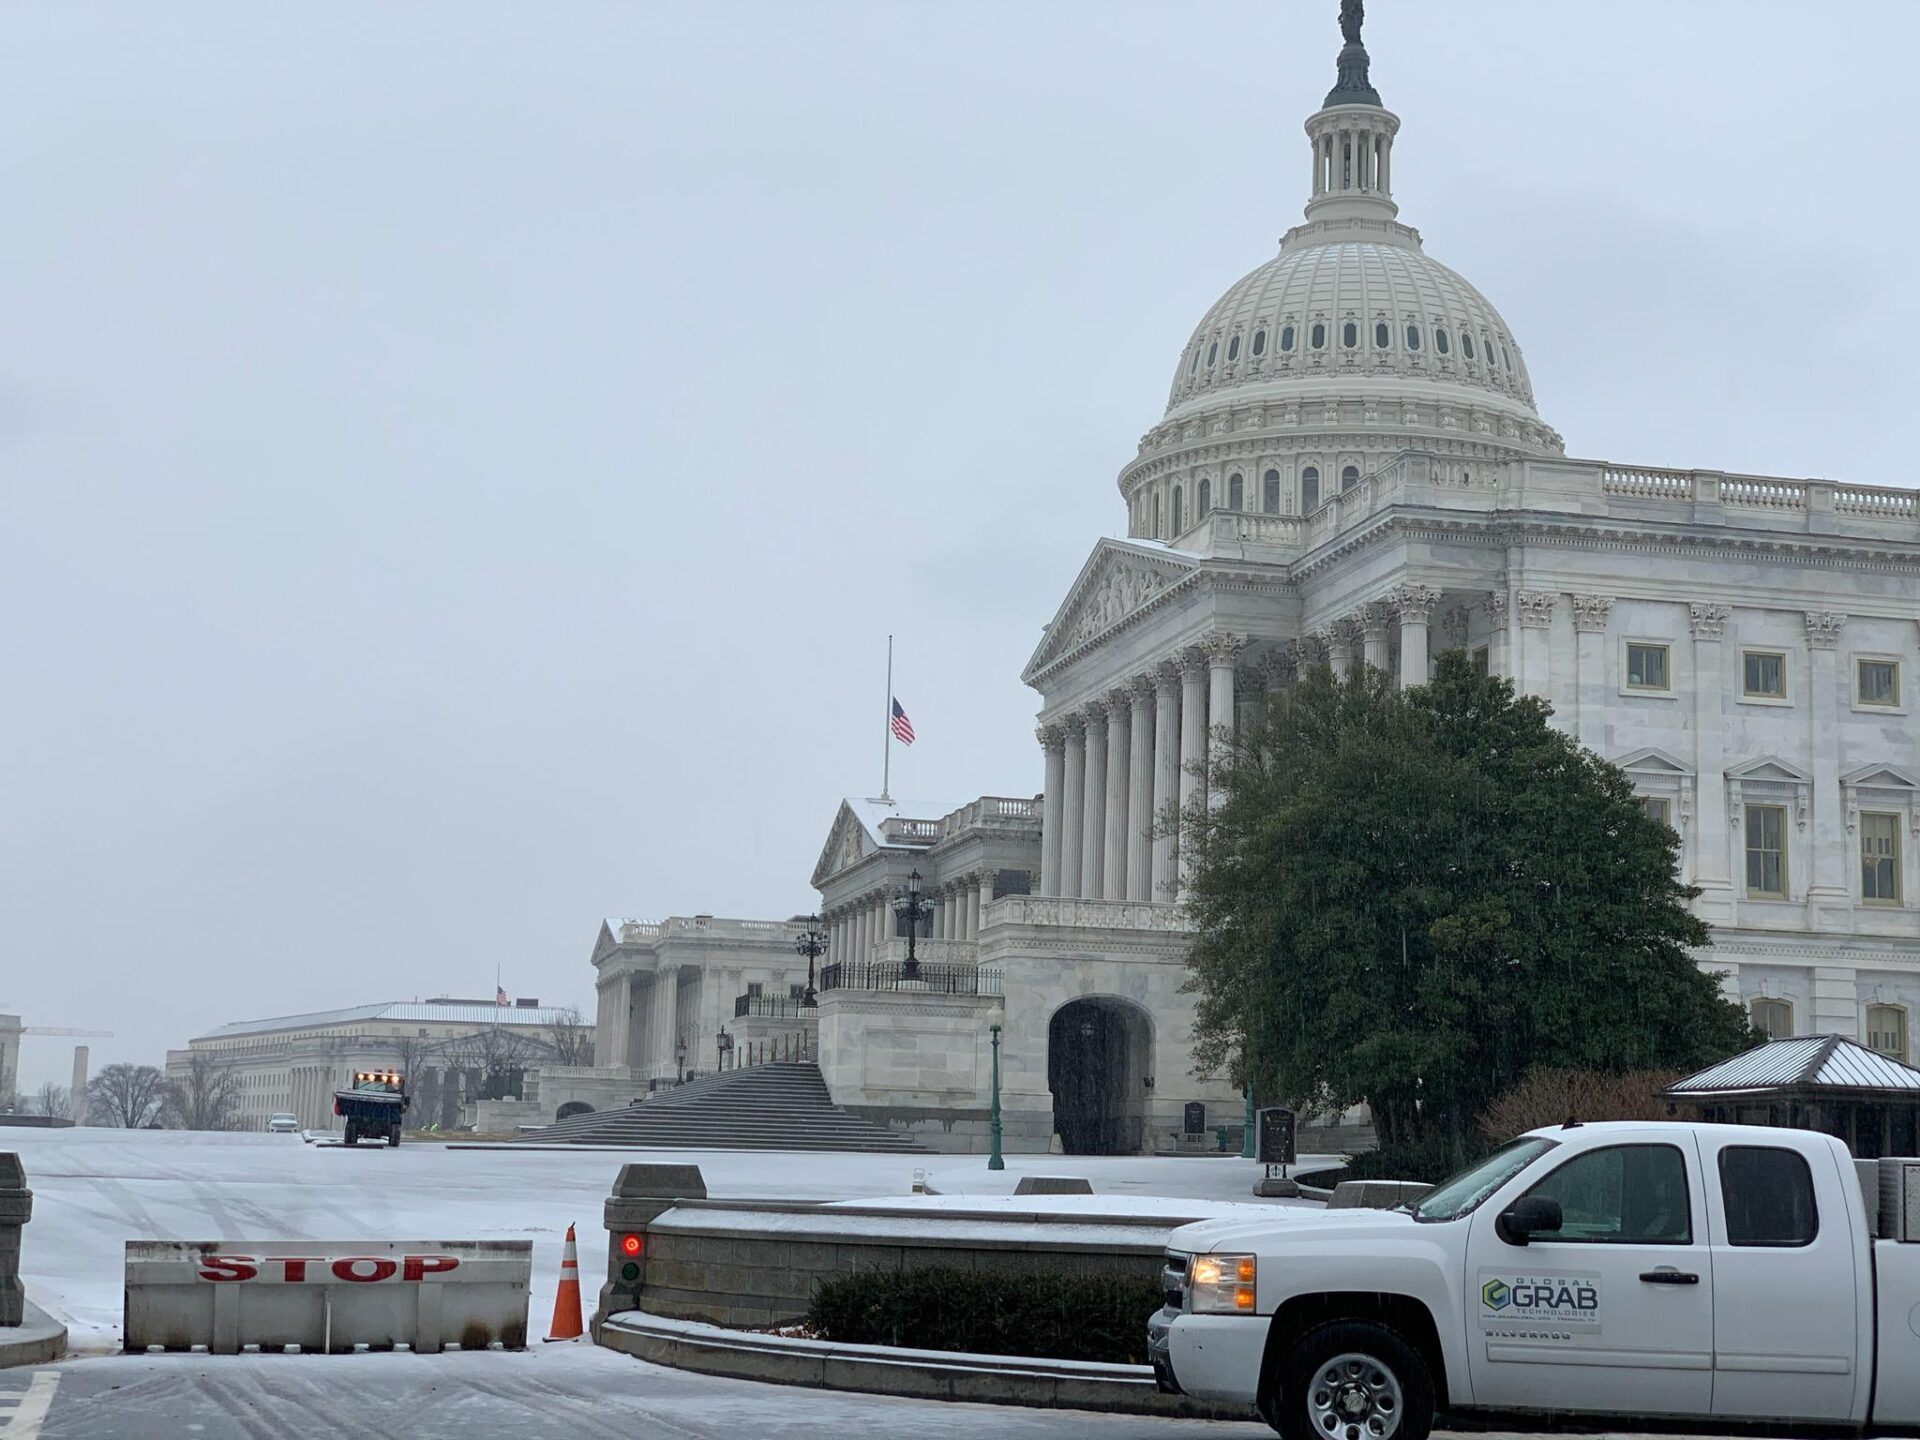 Global GRAB Supporting U.S. Capitol Police 2021